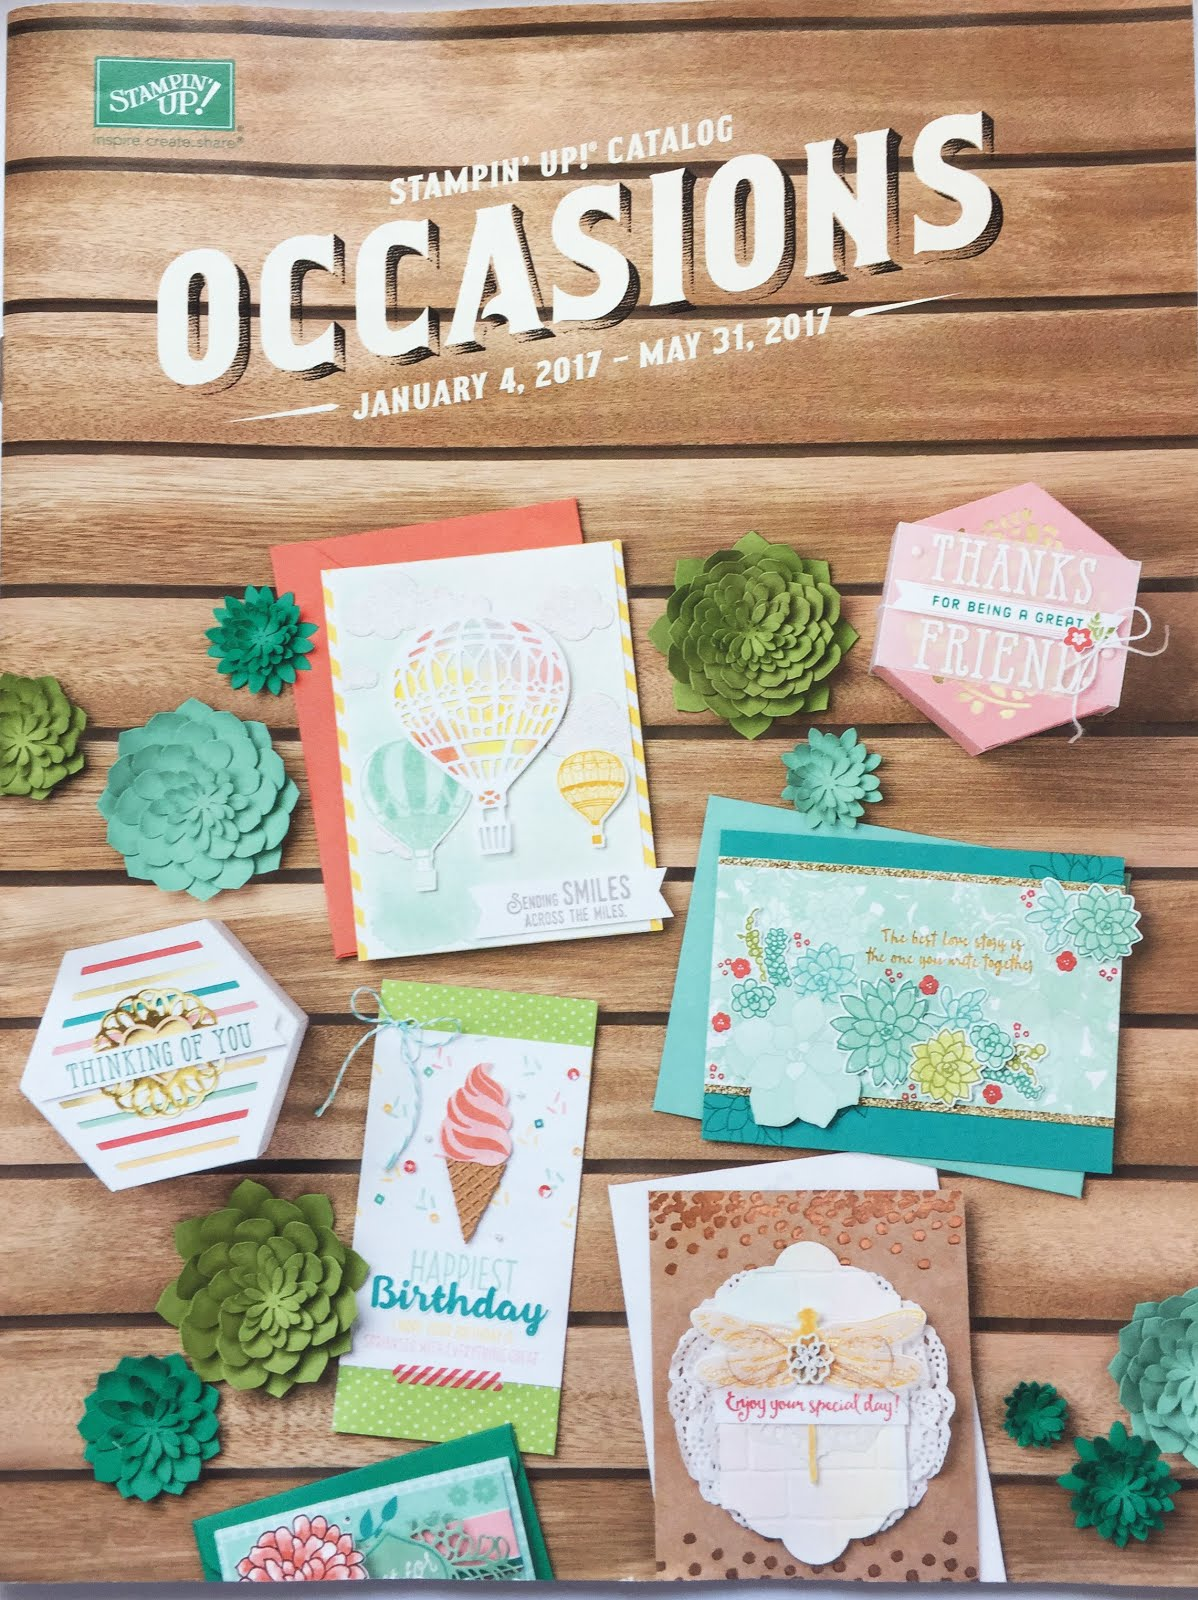 2017 Occasions Catalog